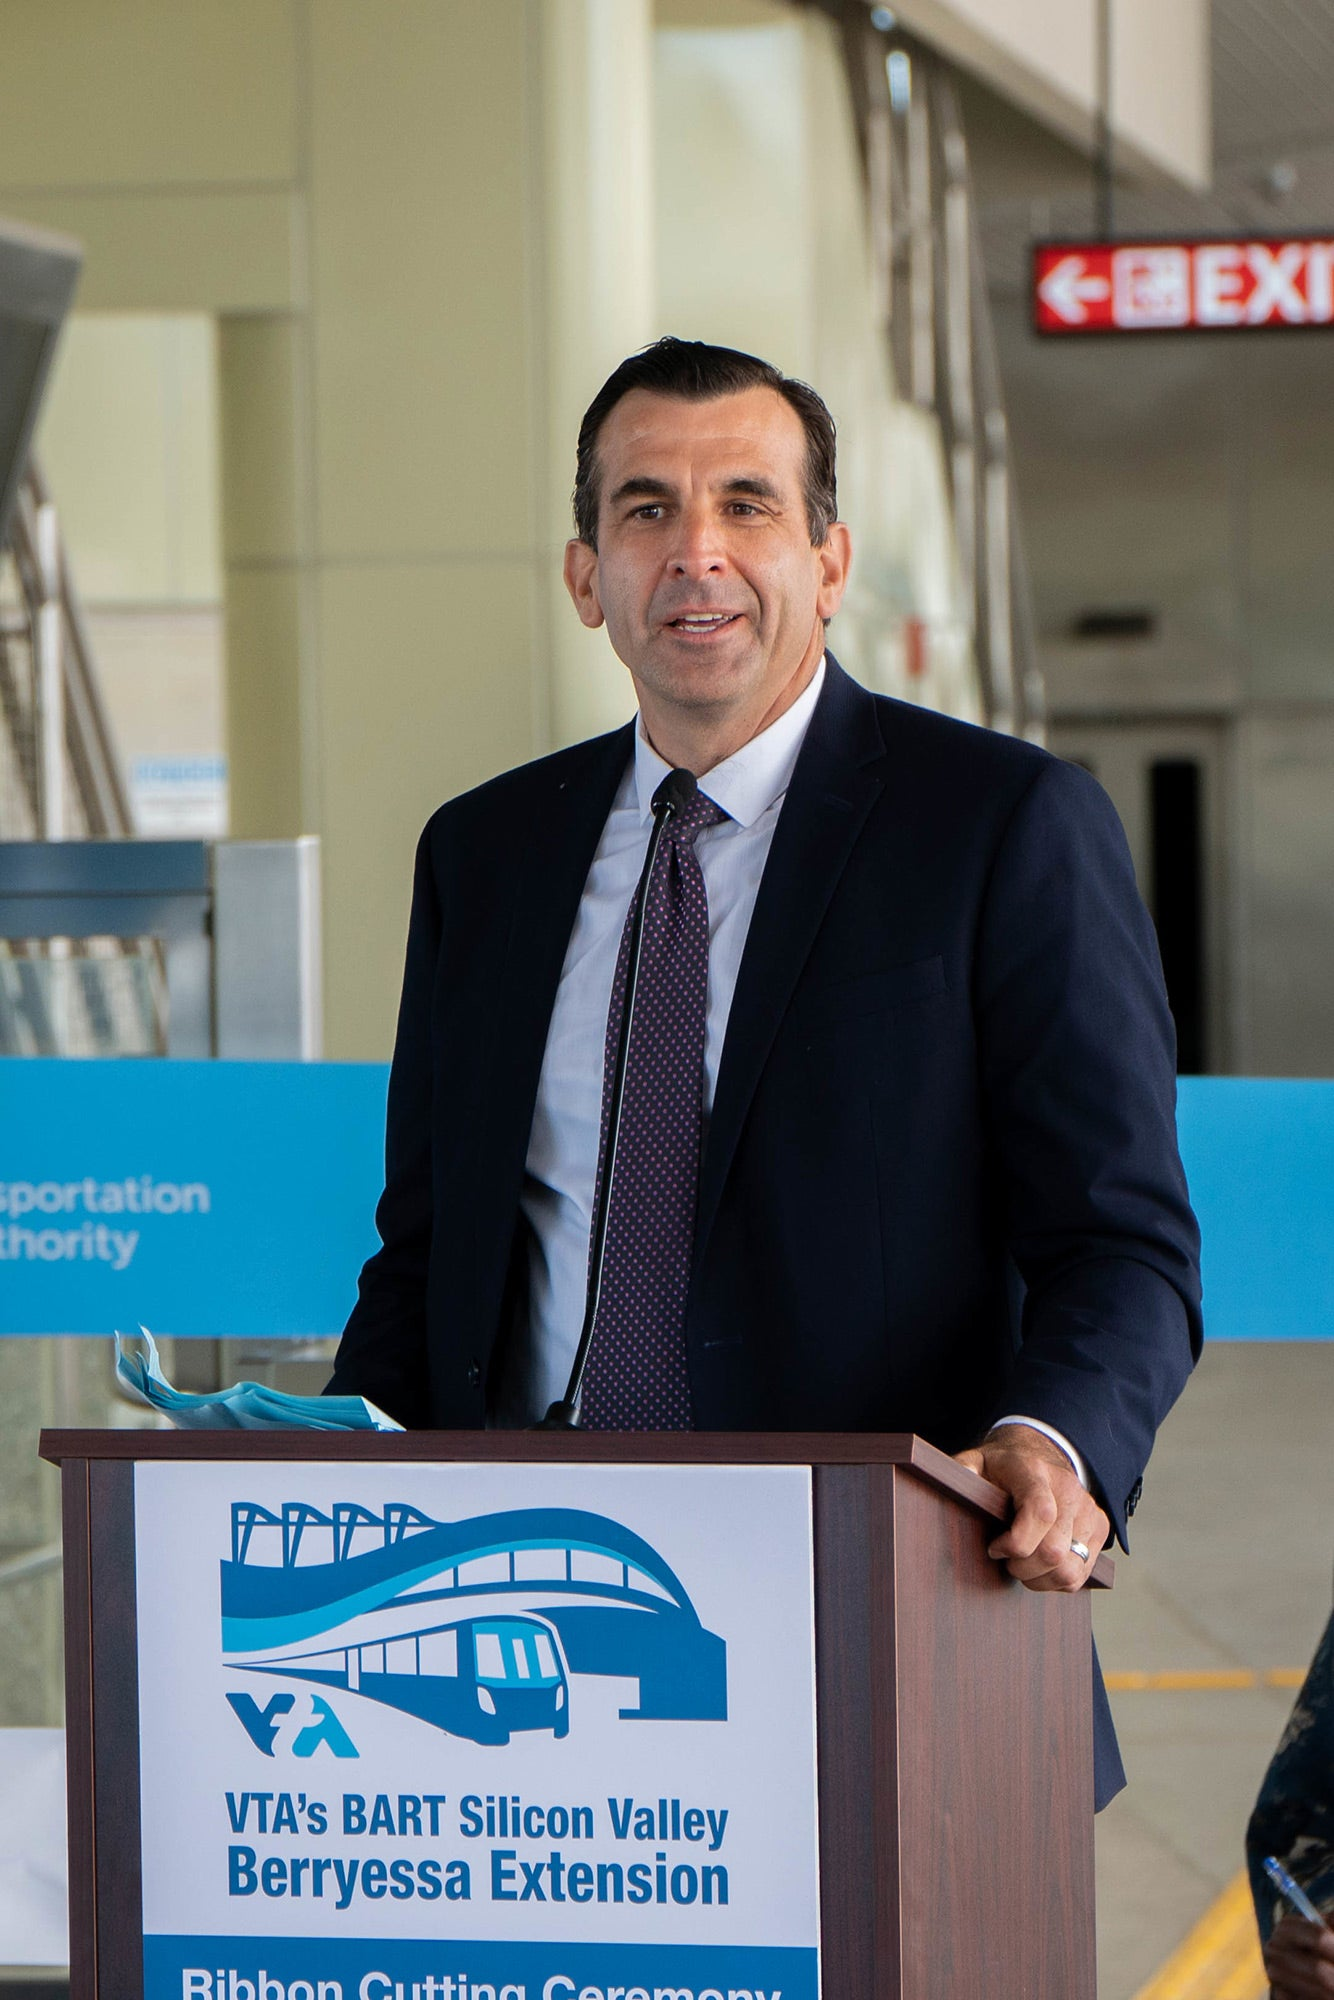 San Jose Mayor and MTC Commissioner Sam Liccardo. Photo: Santa Clara Valley Transportation Authority